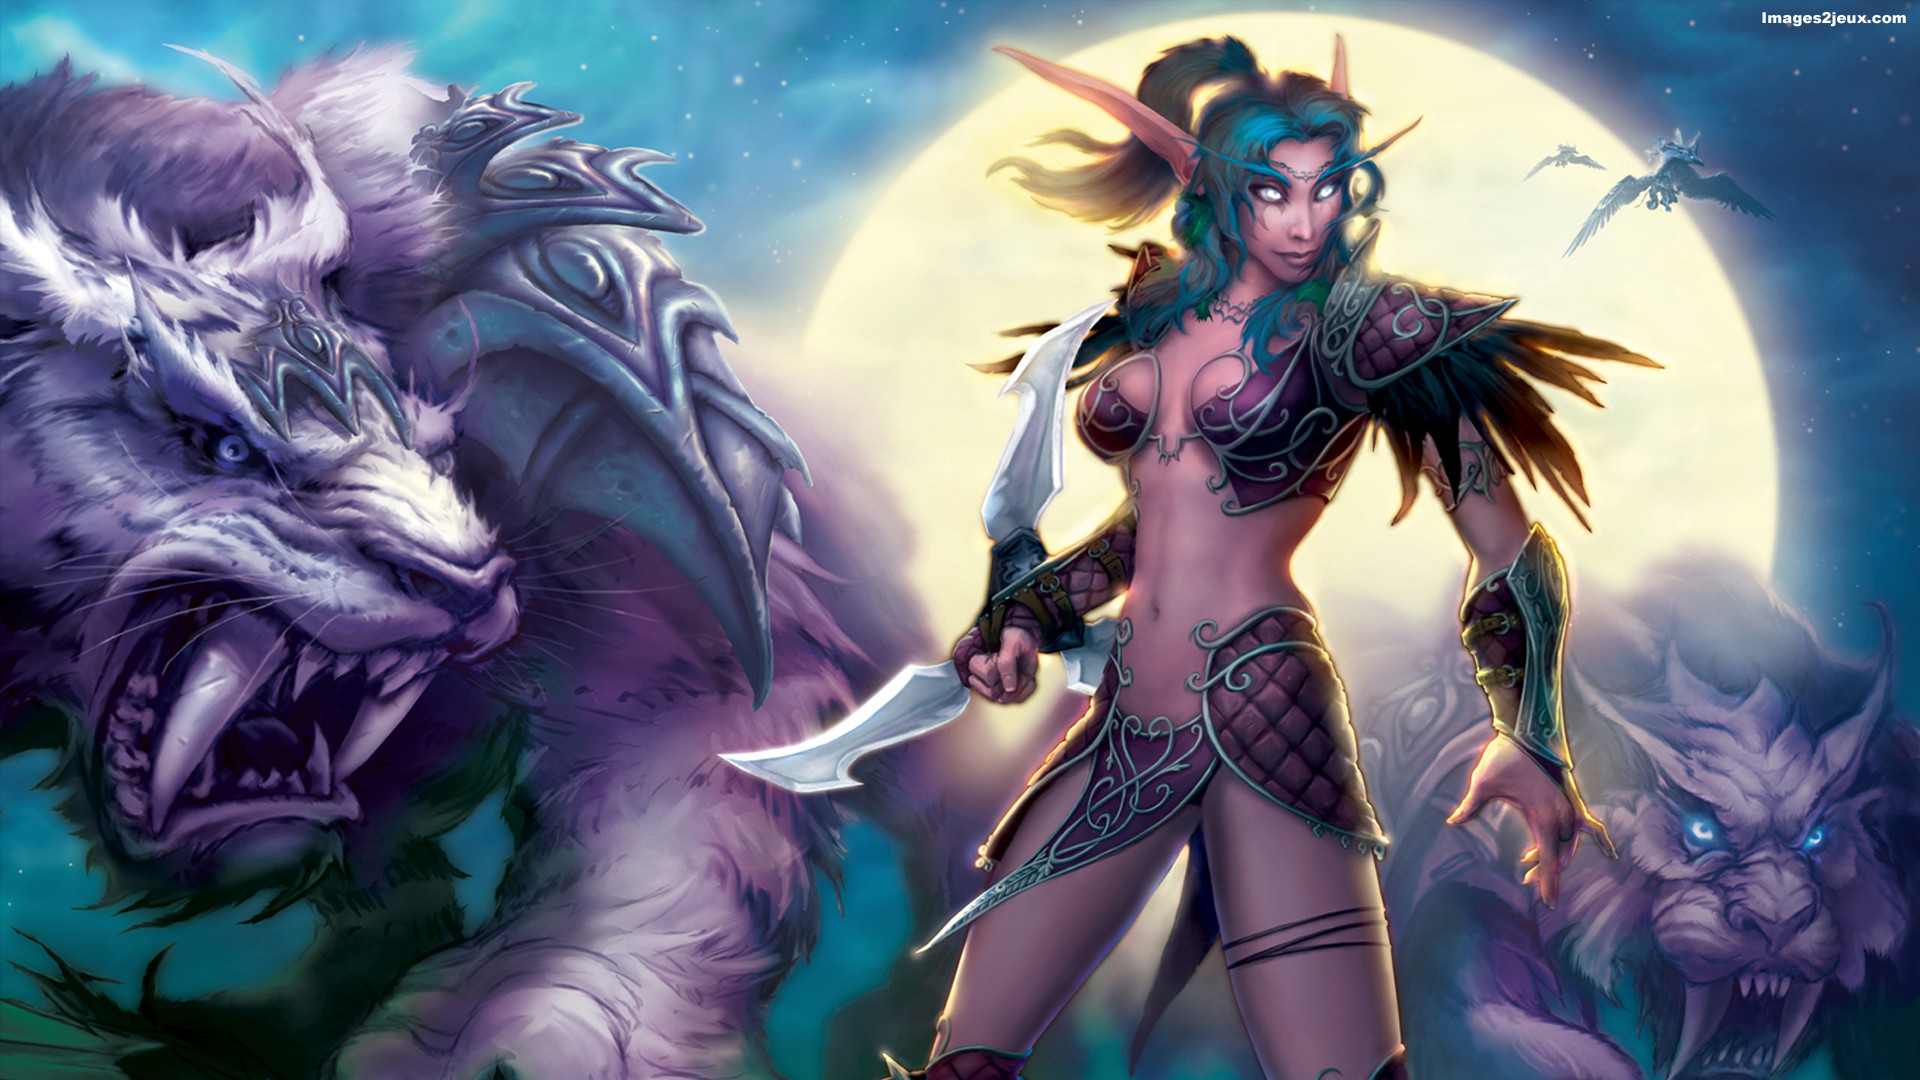 Alliance HD Wallpapers Backgrounds 1024×640 World Of Warcraft Alliance  Wallpaper (40 Wallpapers)